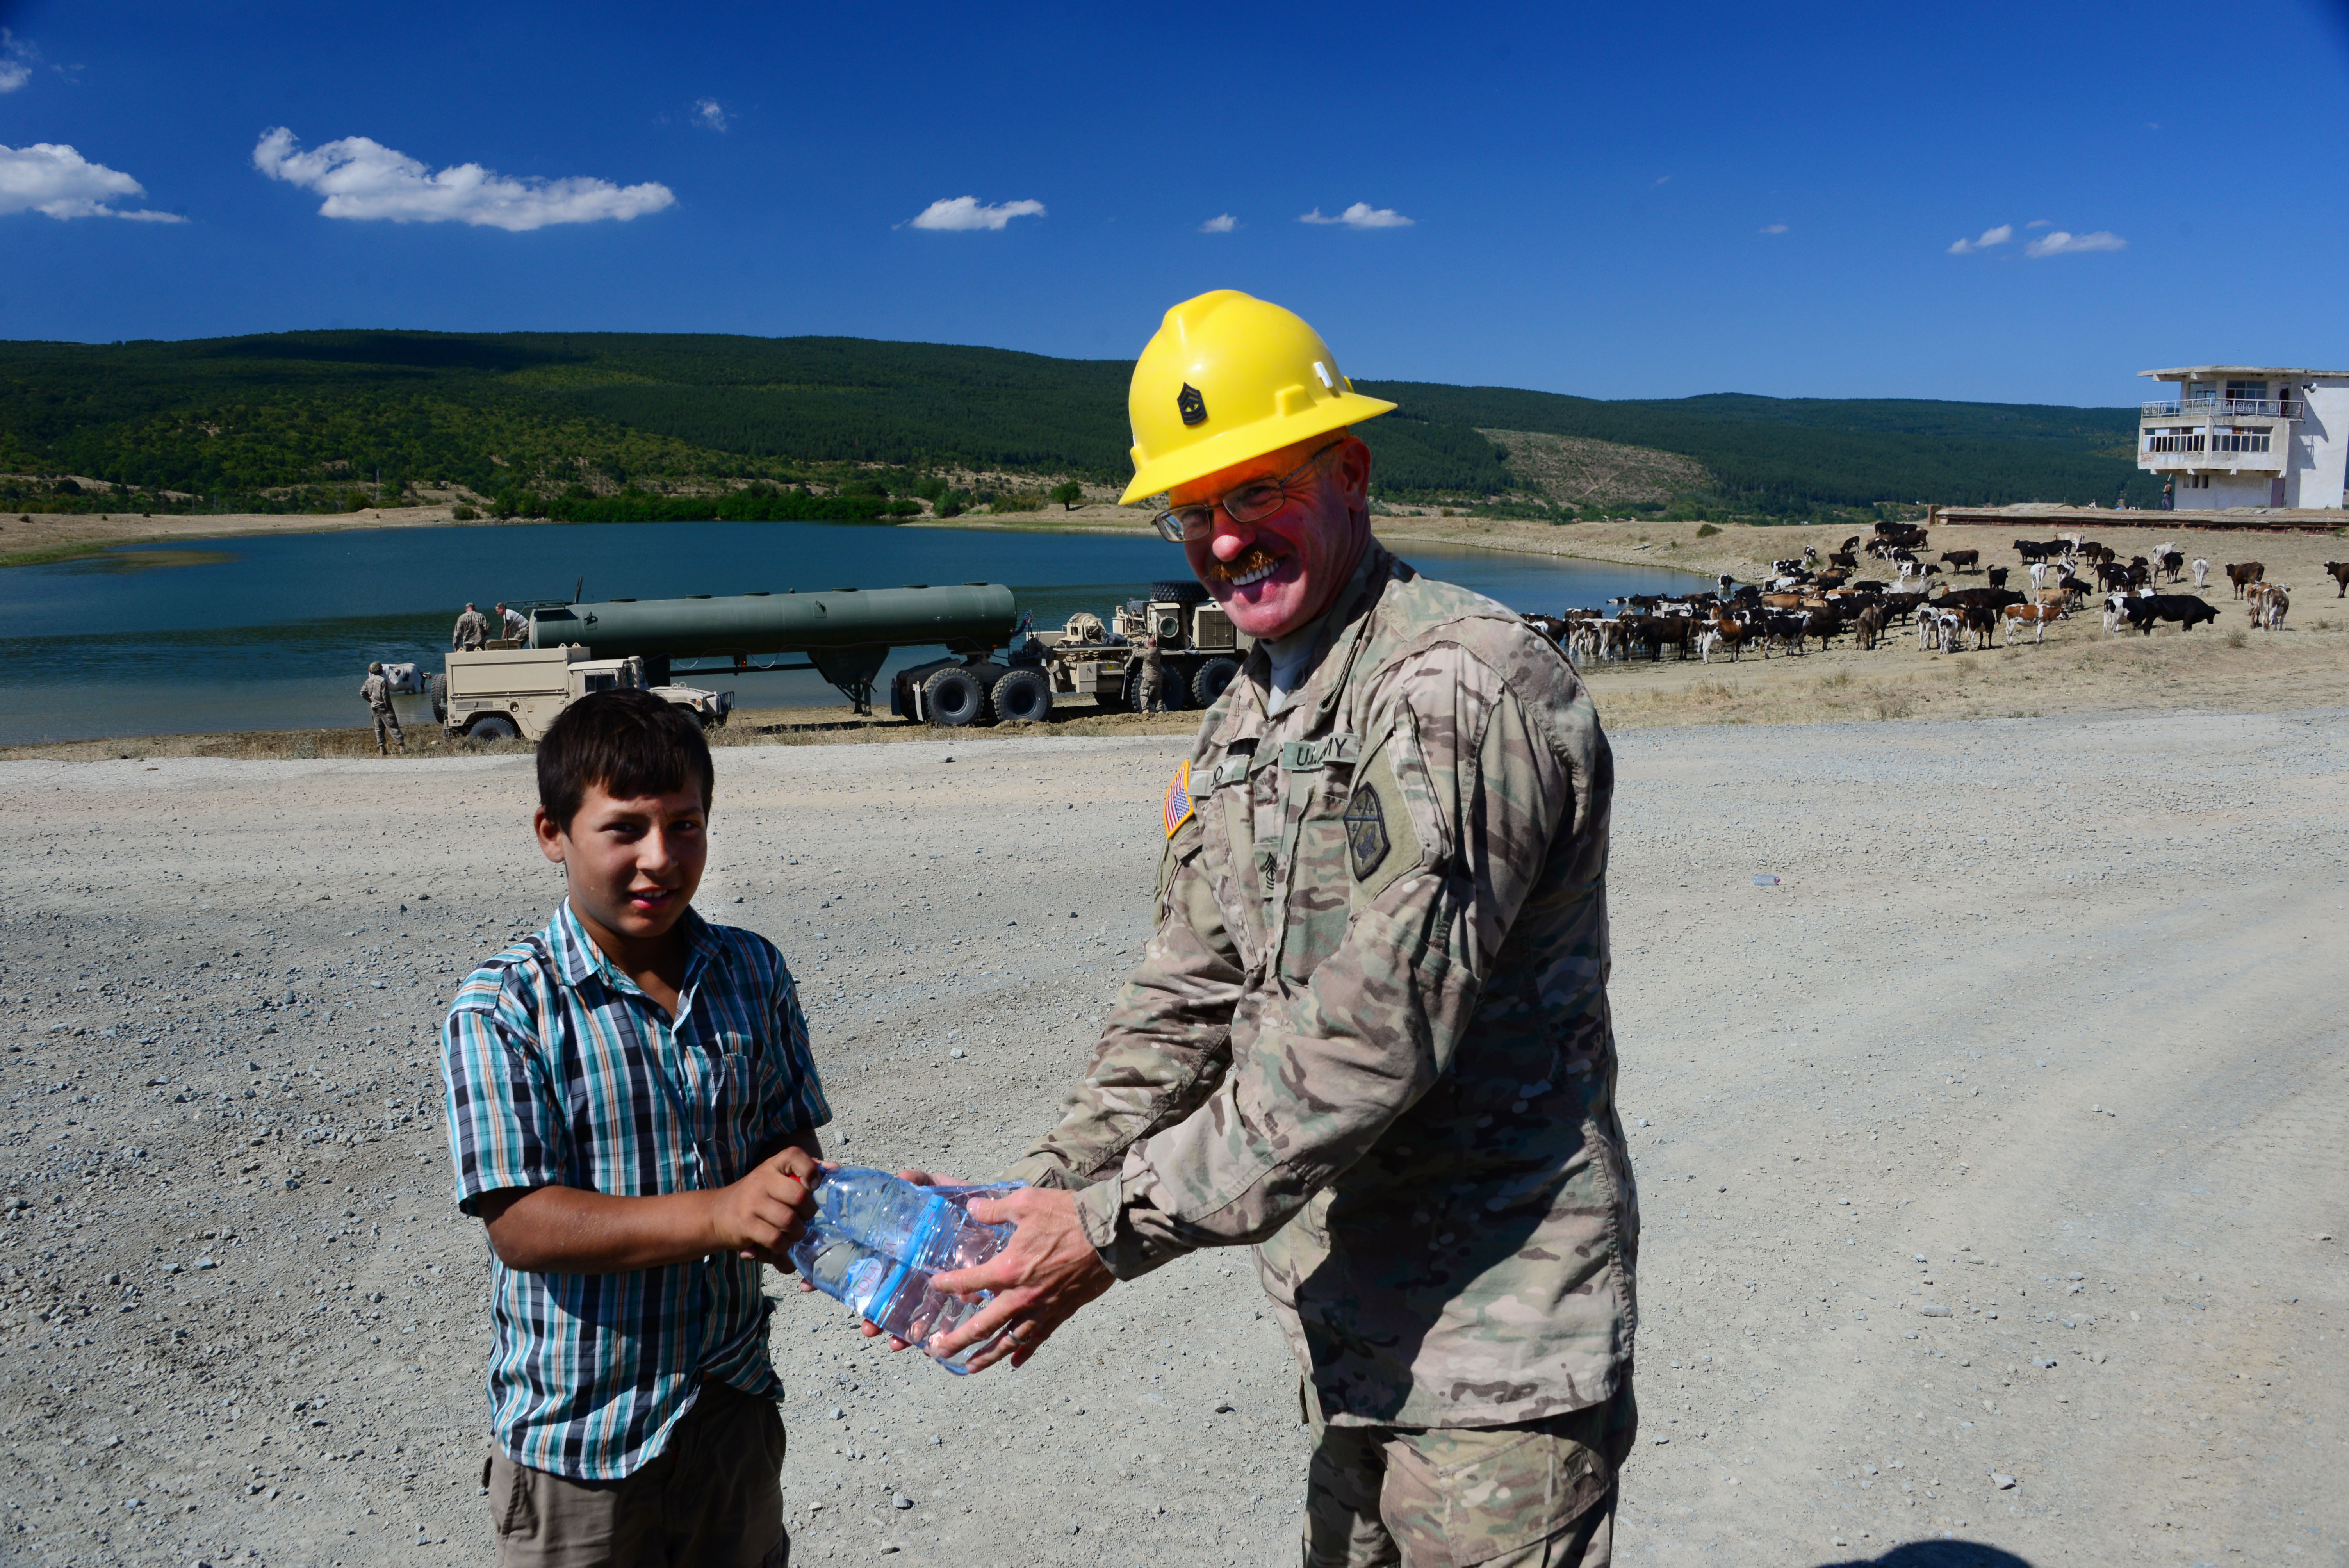 1st Sgt. Mike Ilko, 194th Engineer Brigade, Tennessee Army National Guard, shares bottled water with a young cattle herder Aug. 16, 2016, at Novo Selo Training Area, Bulgaria.  Local cattle and sheep herders regularly herd thier animals across NSTA.  Tennessee National Guard Soldiers and Airmen were on rotations to complete thier portions of projects as part of Operation Resolute Castle 16, an ongoing operation of military construction to build up Eastern European base infrastructure and help strengthen ties between Tennessee's state partnership with Bulgaria. (U.S. Air National Guard photo by Master Sgt. Kendra M. Owenby, 134 ARW Public Affairs)